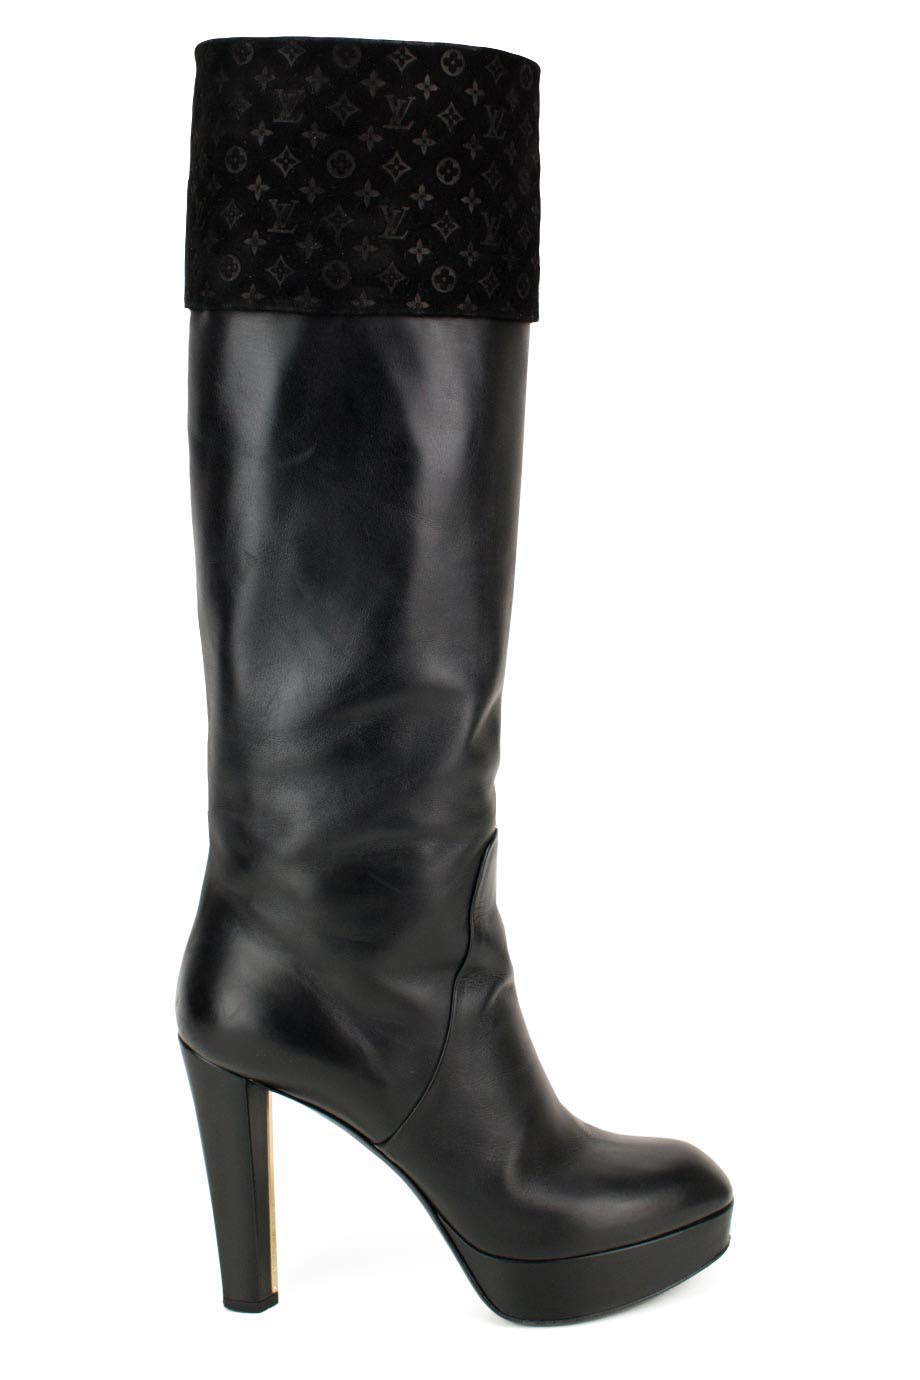 78d84f2b46a Louis Vuitton. Knee High Boot